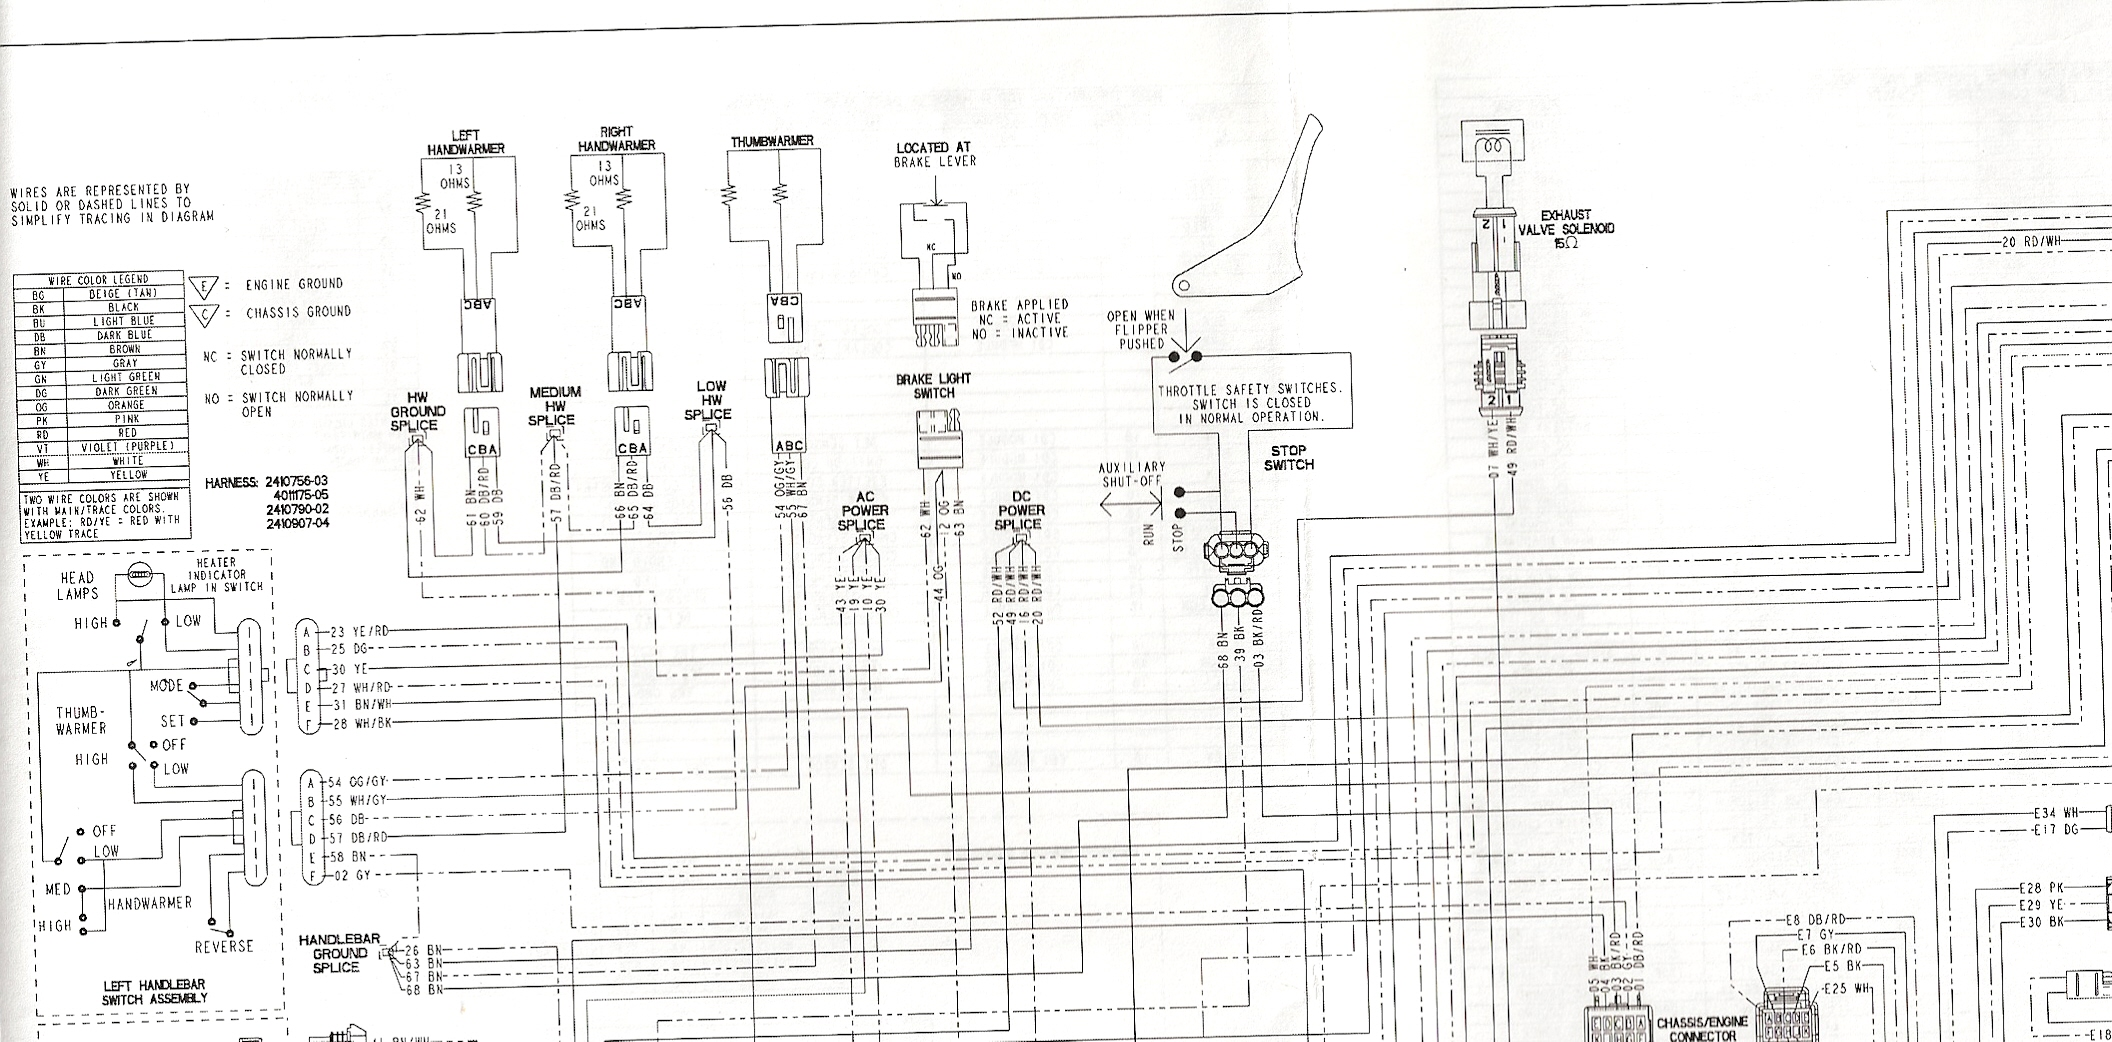 Suzuki Boulevard C Wiring Diagram on 2005 Suzuki C90 Wiring Diagram